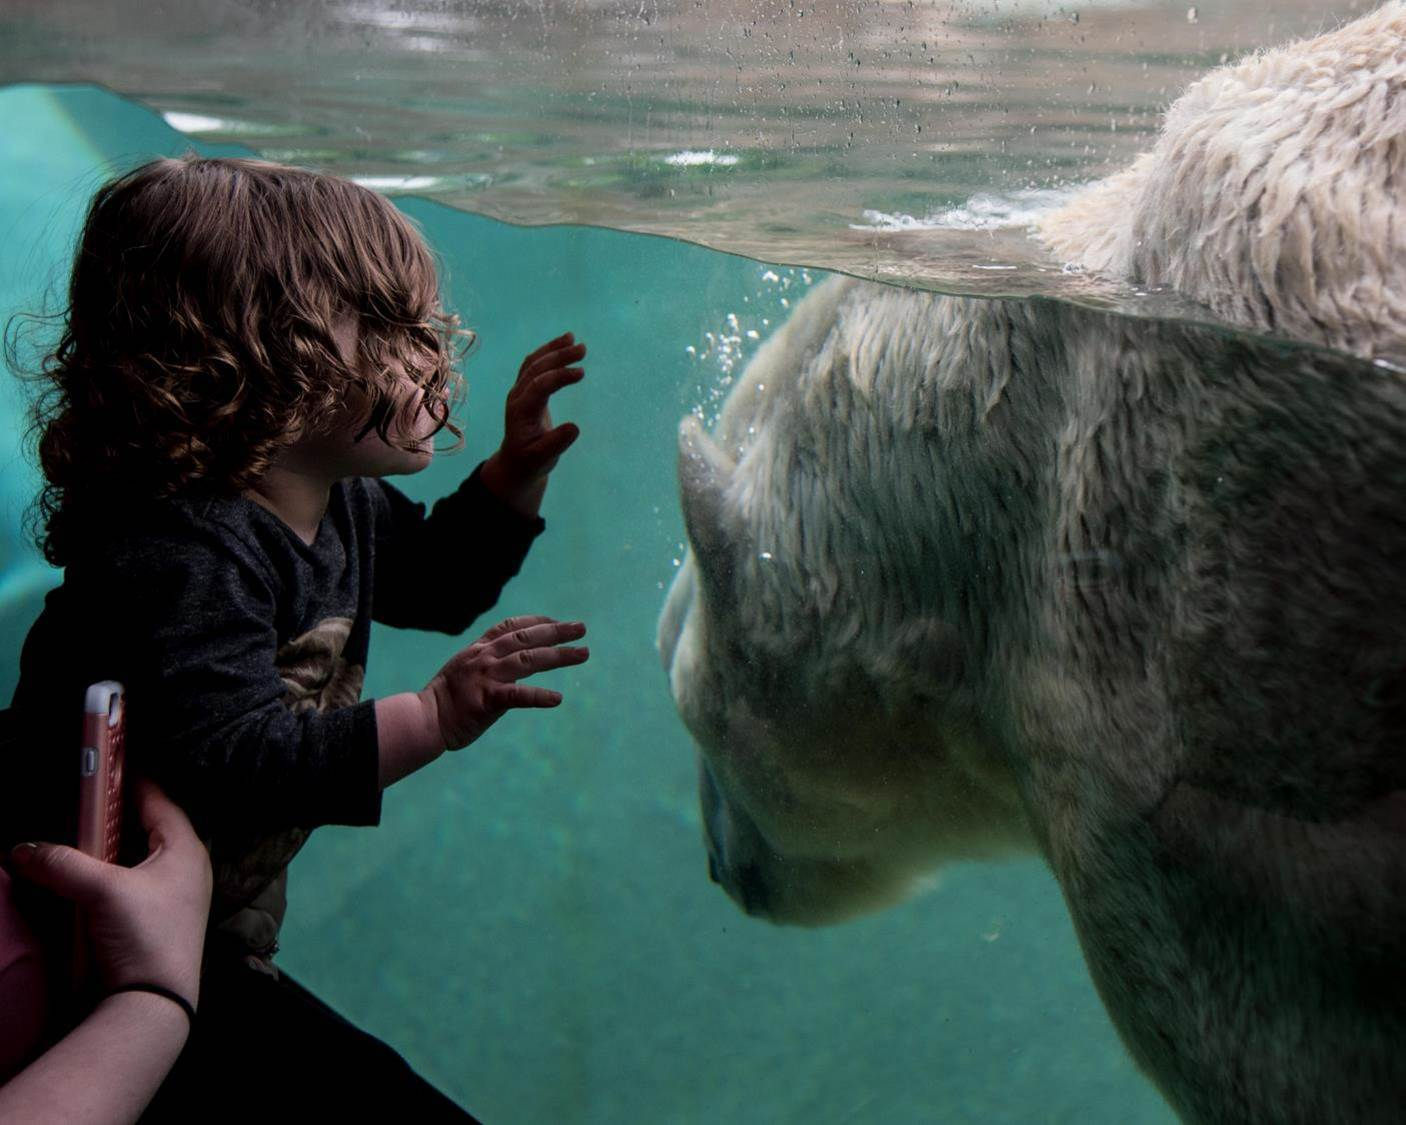 A child with a polar bear swimming on the other side of the glass